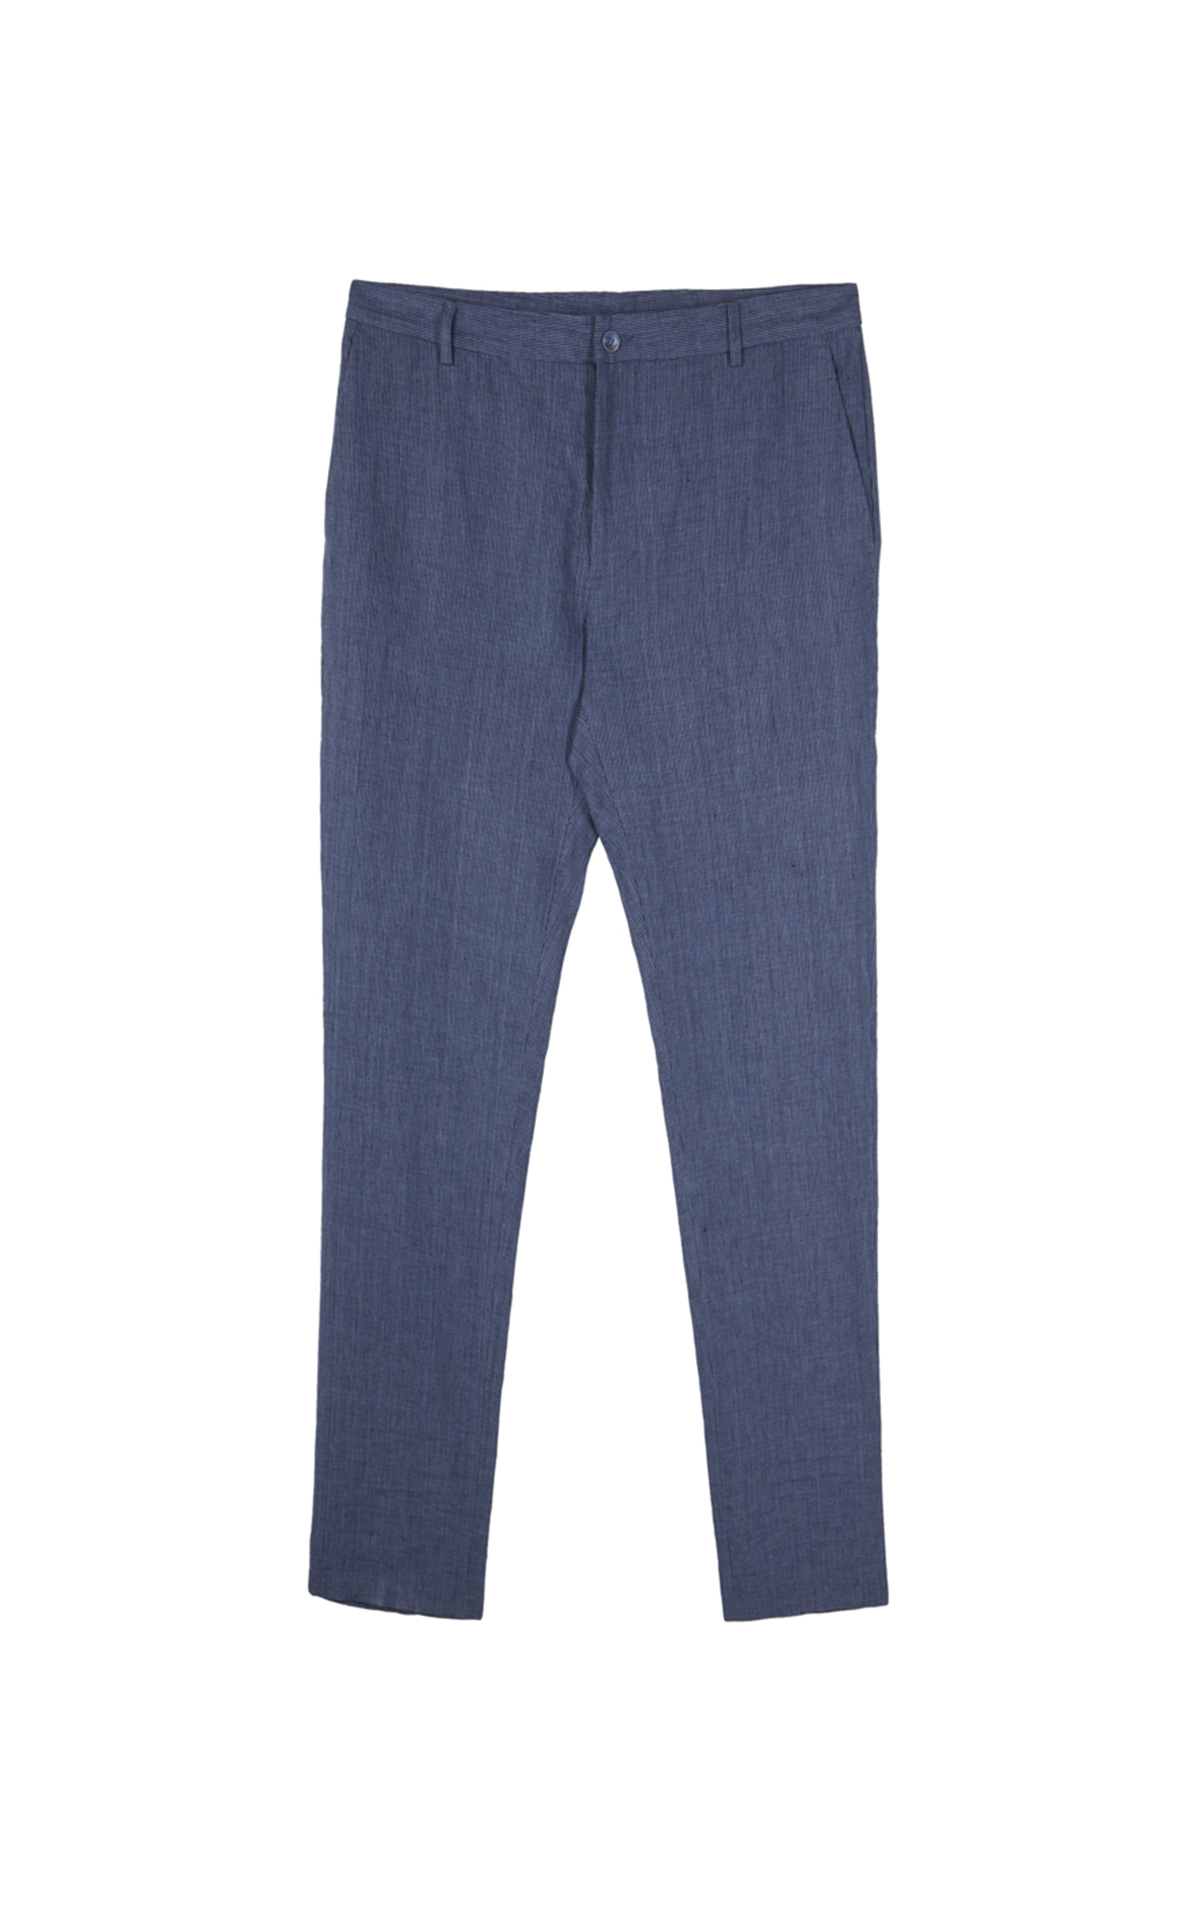 Blue linen trousers Adolfo Dominguez